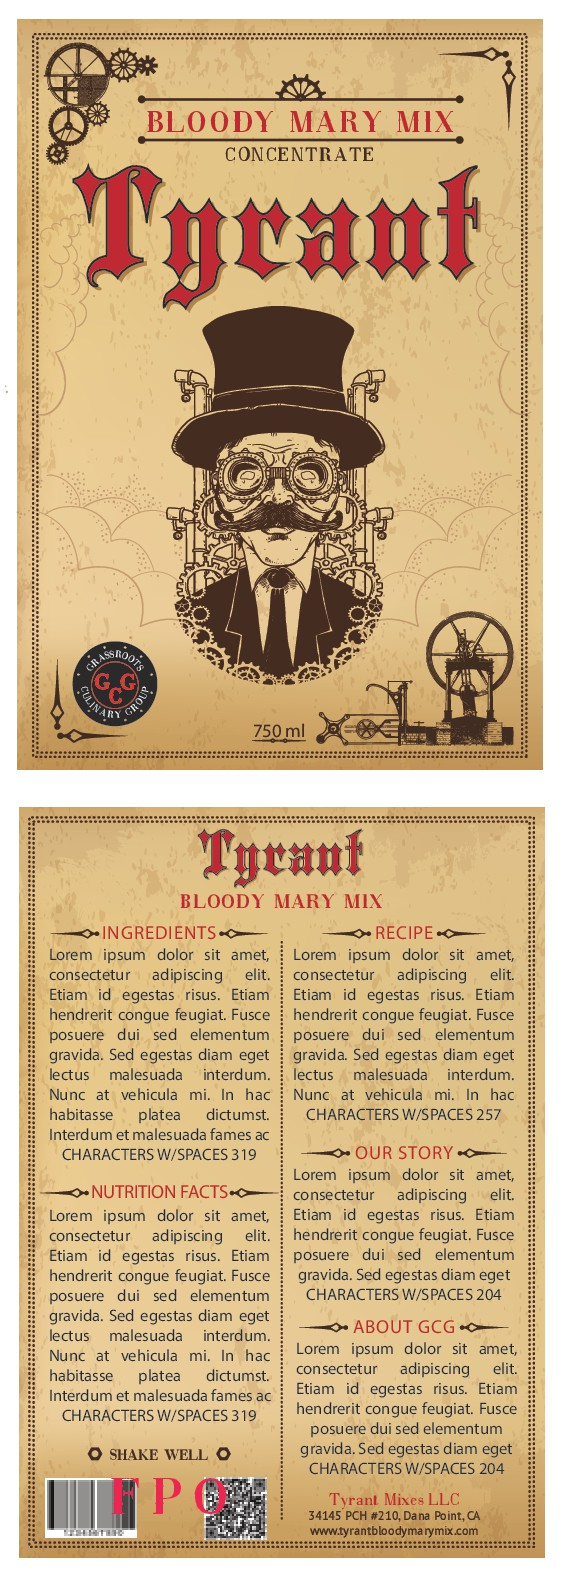 Create an old school, high-end label for our original bloody mary mix (looking for weathered, wrinkled type of label)